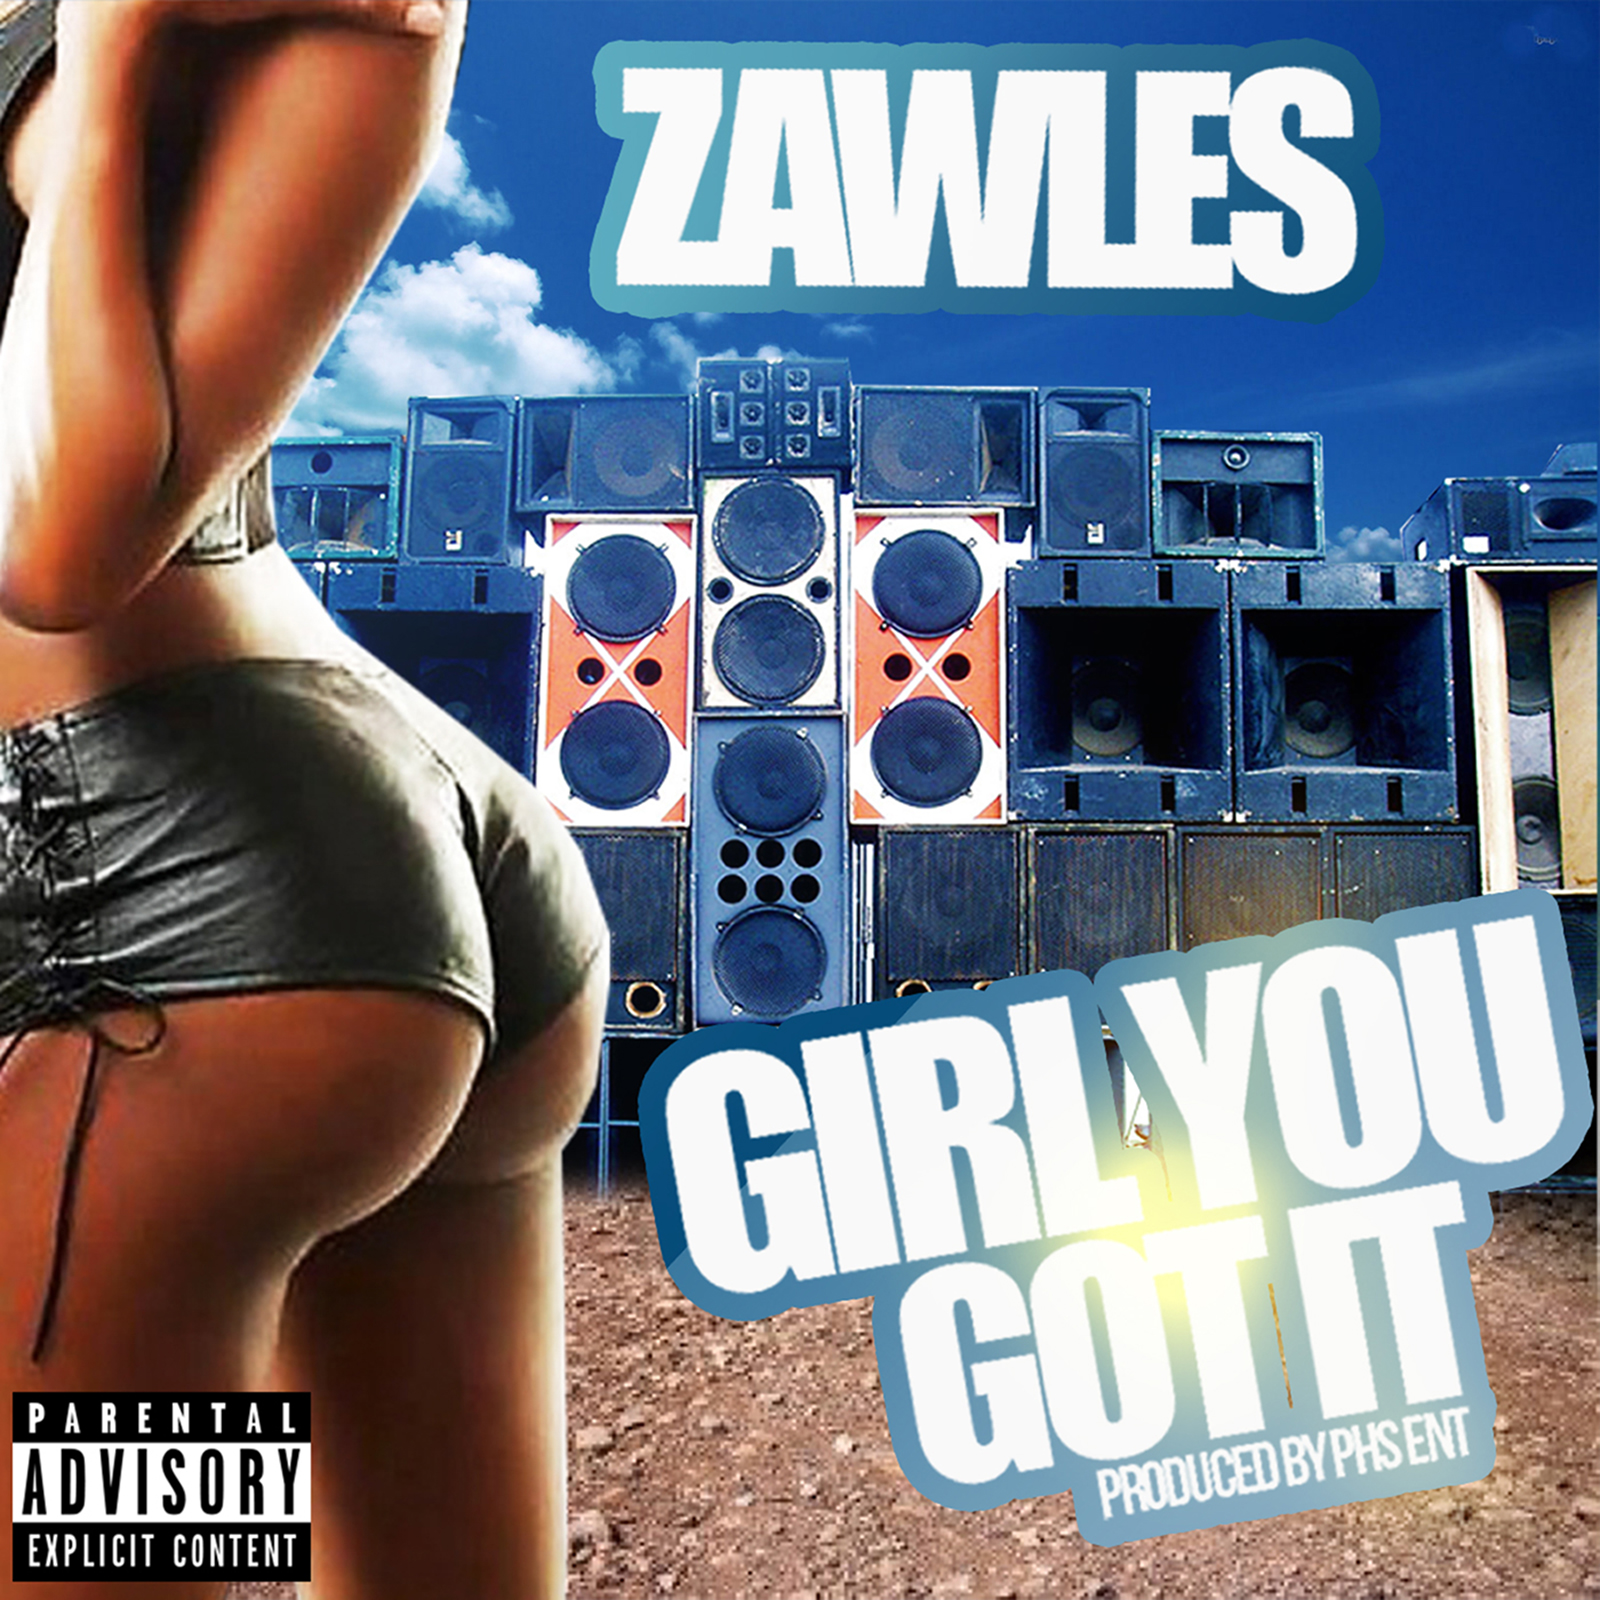 Zawles Girl You Got It2 - YouTube Music premiere - Girl You Got It (Tuesday May 14th)